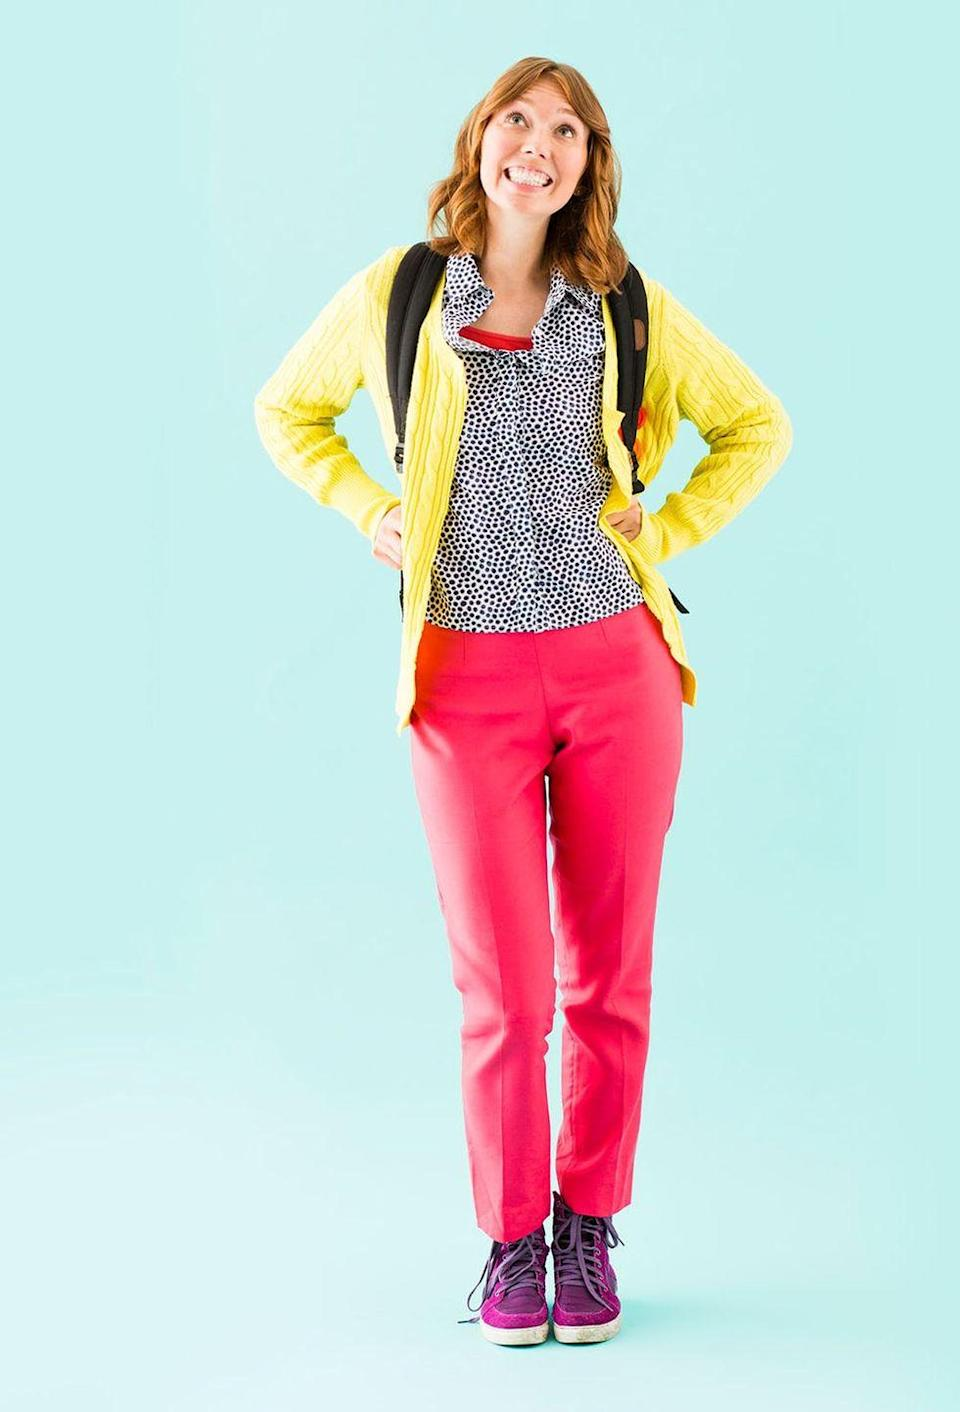 """<p>Kimmy Schmidt's penchant for yellow cardigans and pink pants makes her typical getup an instantly-recognizable costume. This one's an incredibly inexpensive option, and your teen can wear all of the items again.</p><p><strong>Get the tutorial at <a href=""""https://www.brit.co/diy-redhead-halloween-costumes/"""" rel=""""nofollow noopener"""" target=""""_blank"""" data-ylk=""""slk:Brit + Co"""" class=""""link rapid-noclick-resp"""">Brit + Co</a>.</strong></p><p><a class=""""link rapid-noclick-resp"""" href=""""https://www.amazon.com/Cardigans-Yellows-Sweaters/s?rh=n%3A1044612%2Cp_n_size_browse-vebin%3A2343364011&tag=syn-yahoo-20&ascsubtag=%5Bartid%7C10050.g.22118522%5Bsrc%7Cyahoo-us"""" rel=""""nofollow noopener"""" target=""""_blank"""" data-ylk=""""slk:SHOP YELLOW CARDIGANS"""">SHOP YELLOW CARDIGANS</a></p>"""